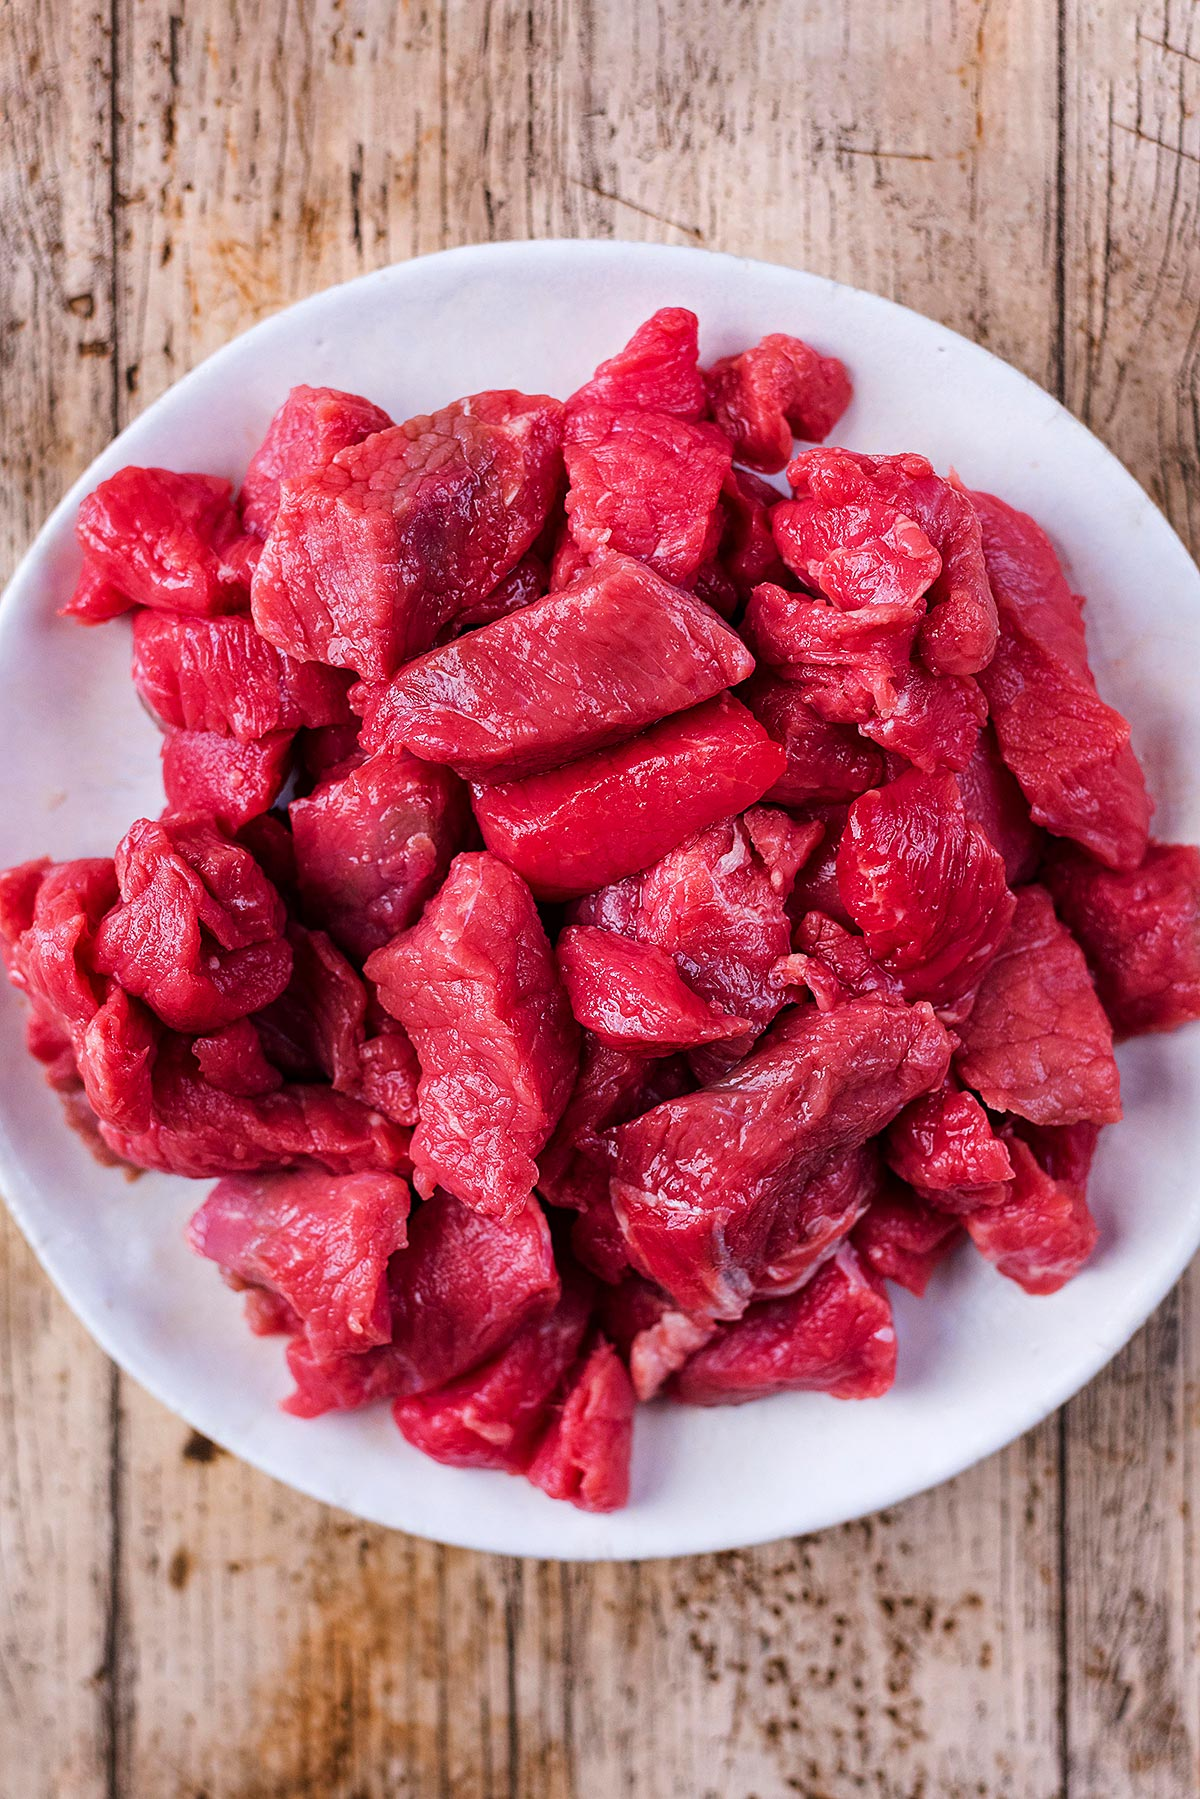 A plate of raw beef cubes